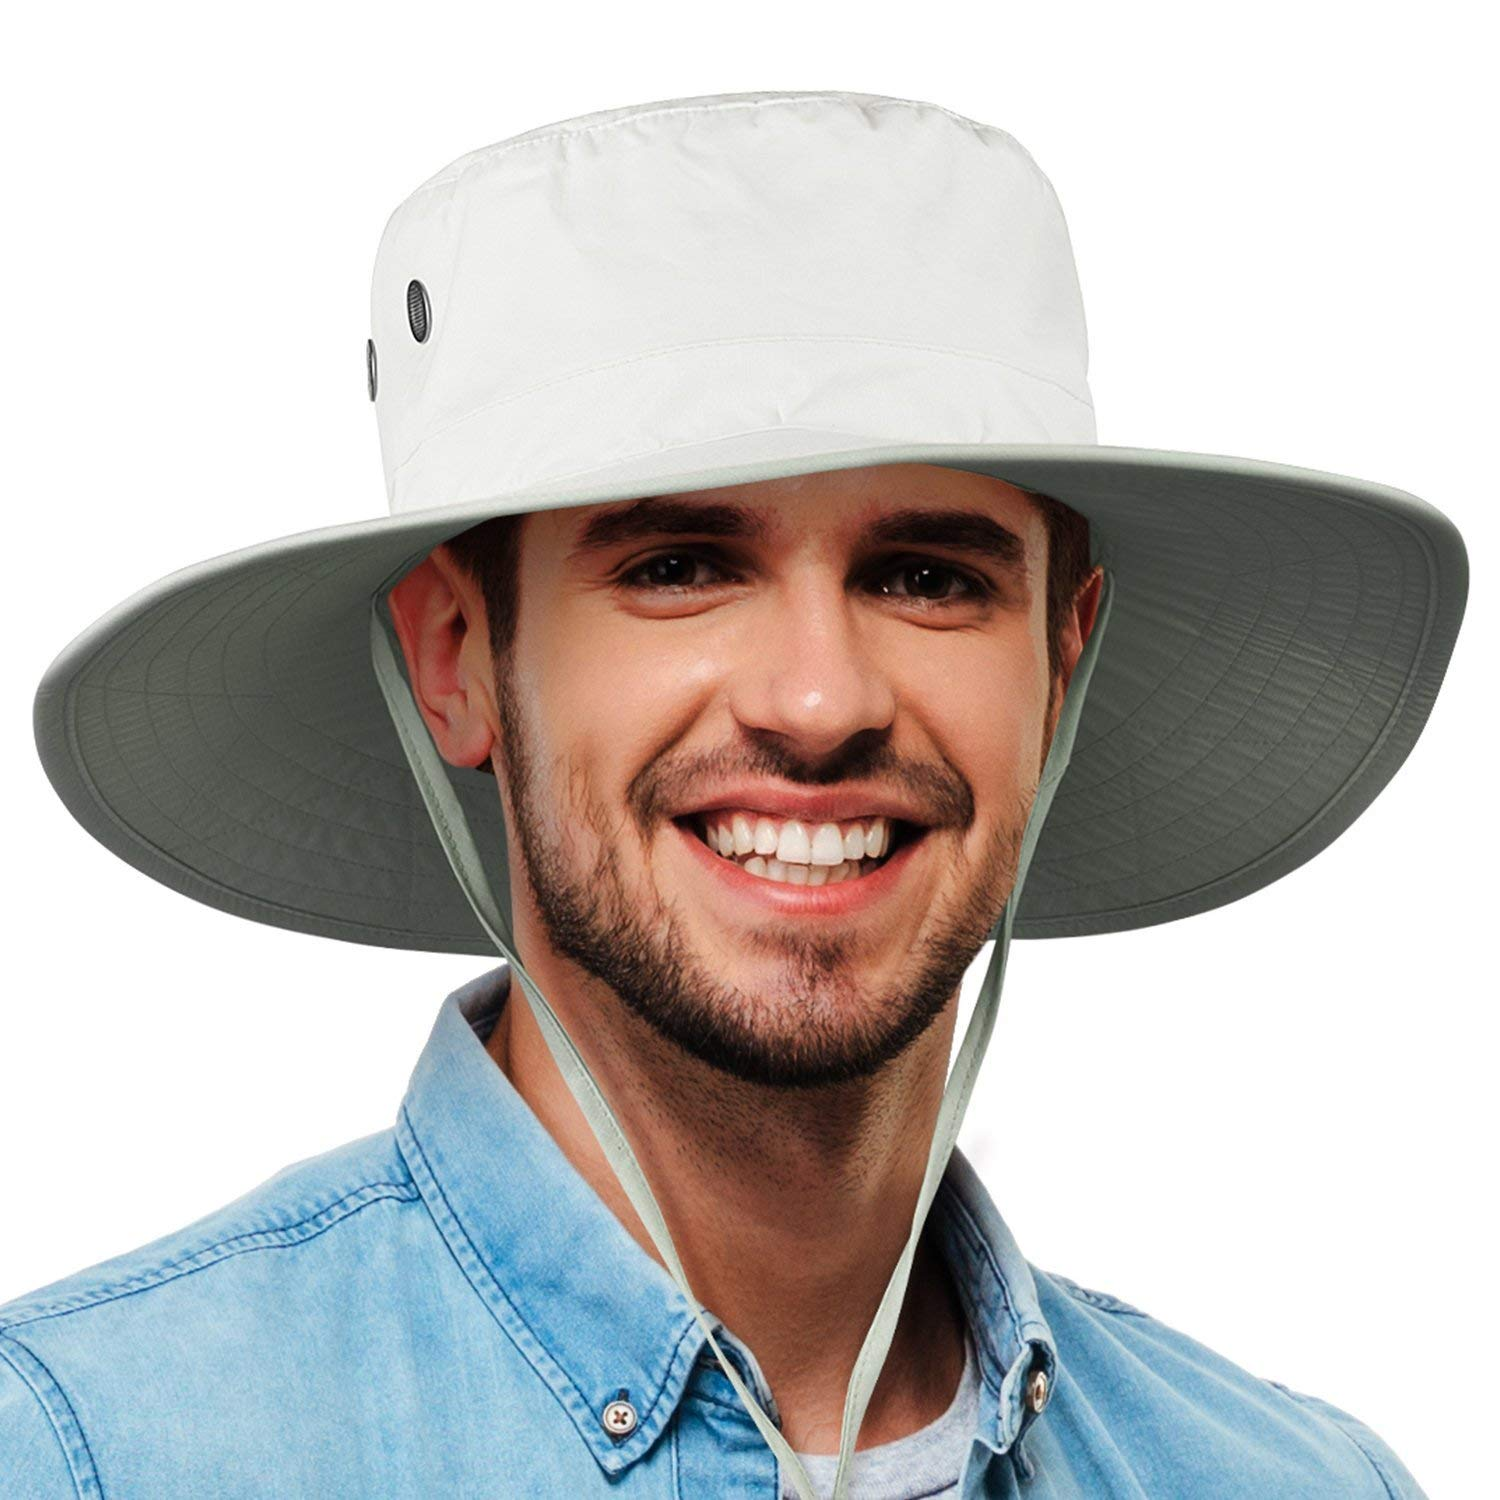 f51a19fc6ac Get Quotations · Tirrinia Unisex Waterproof Sun Hat Wide Brim Safari  Fishing Golf Boonie Hat with Adjustable Drawstring for